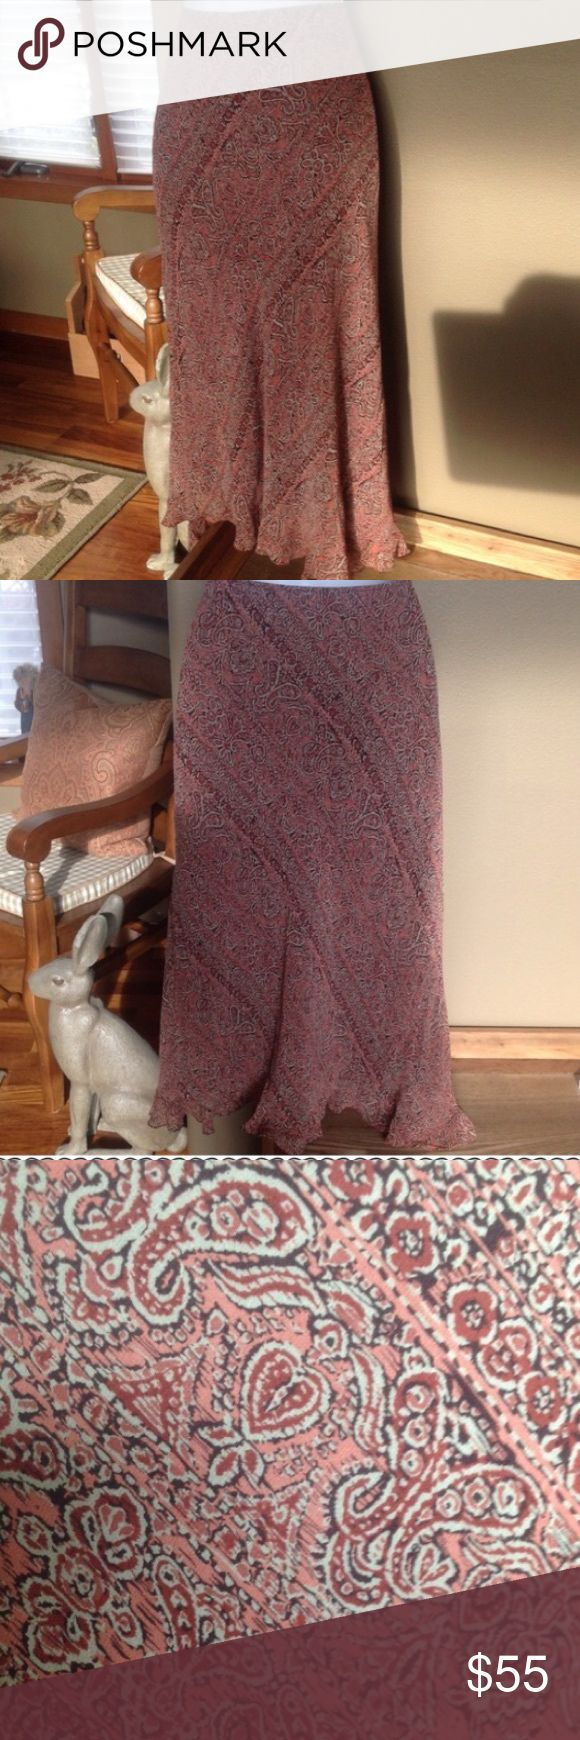 "🍃💕INC Paisley Boho Print 100% Silk Skirt Absolutely beautiful fully lined 100% silk midi skirt in gorgeous Boho paisley print. Features hidden side zip with hook & eye closure, bottom subtle flounce ruffle hem. Waist to hem measures approximately 30"", waist also 30"". This is a petite size 8, I wear a size 4 normally and this I have worn it as a low rise hipster so it sits a few inches above my ankles at 5'10"" to give you the idea. Gently worn a couple of times & in pristine condition…"